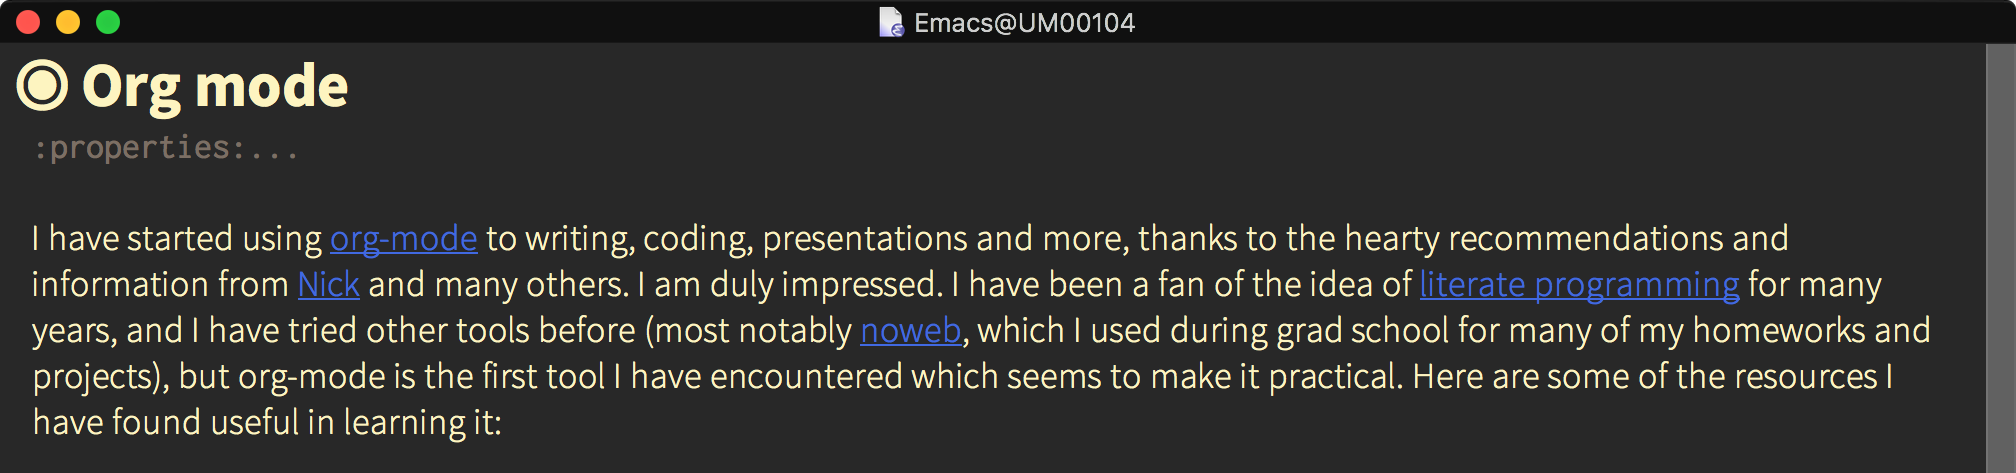 images/emacs-wide-window.png